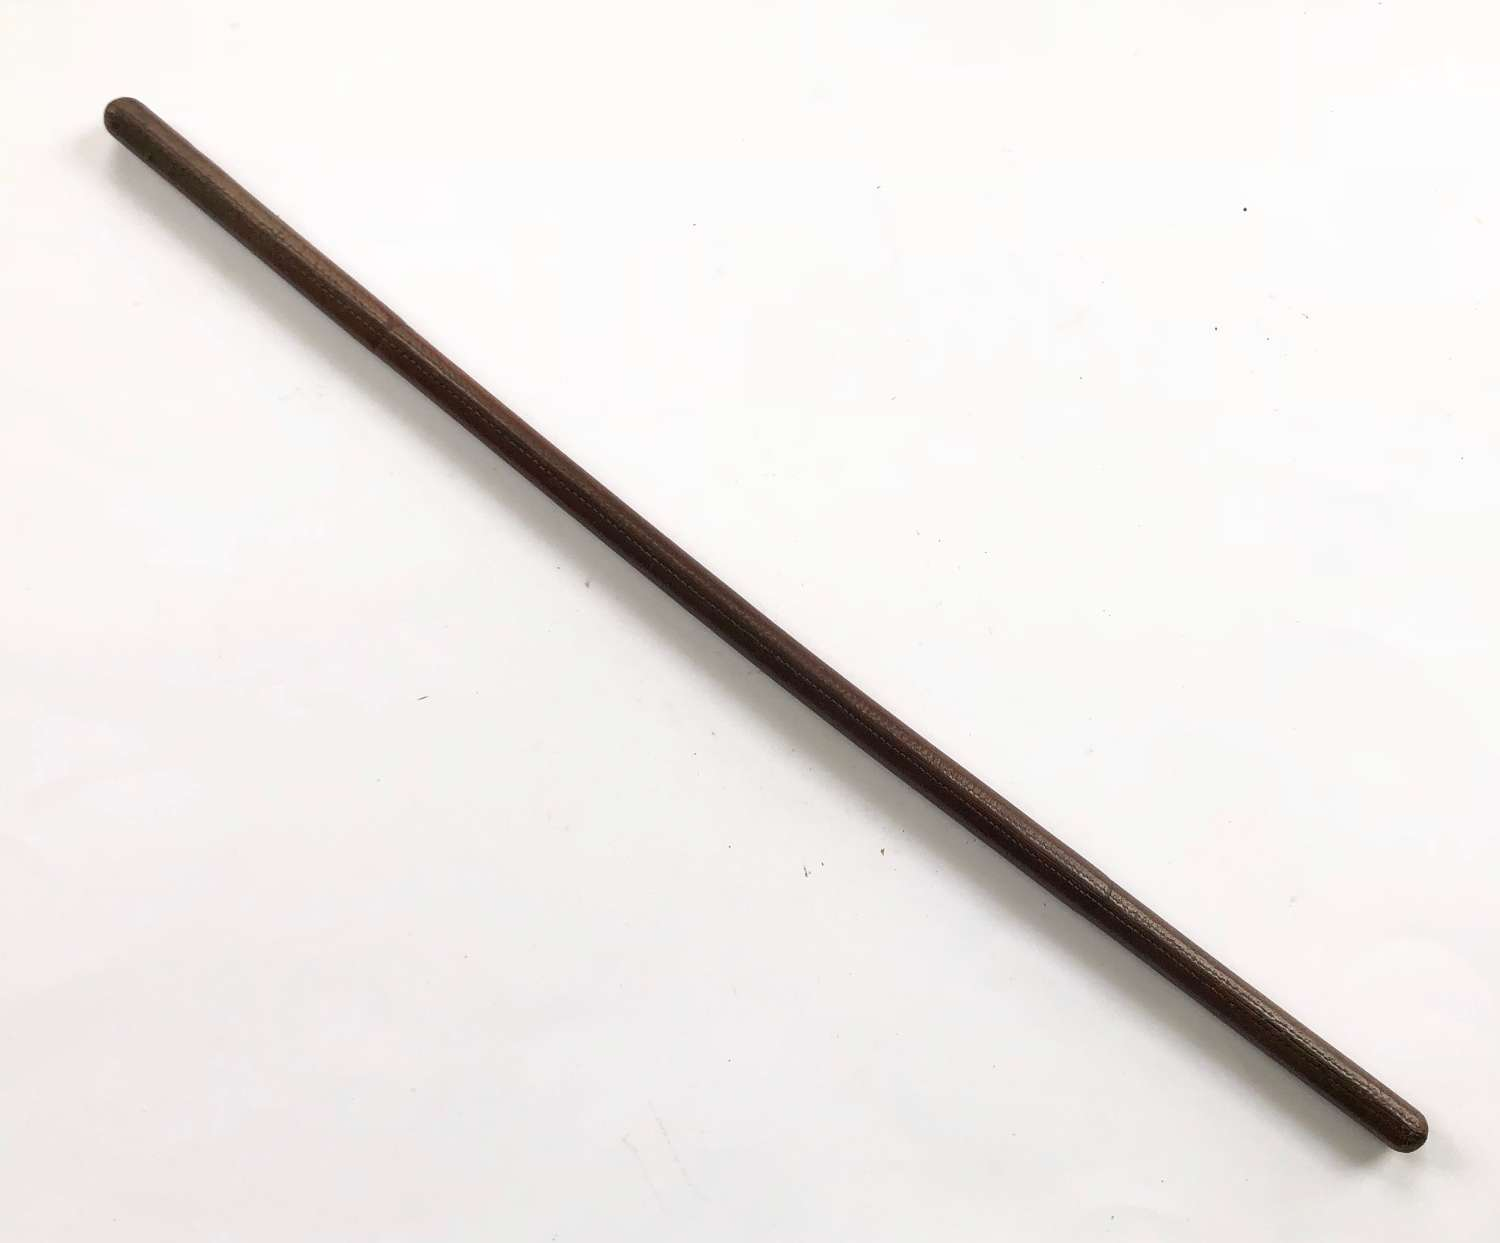 WW1/WW2 British Officer's Leather Swagger Stick